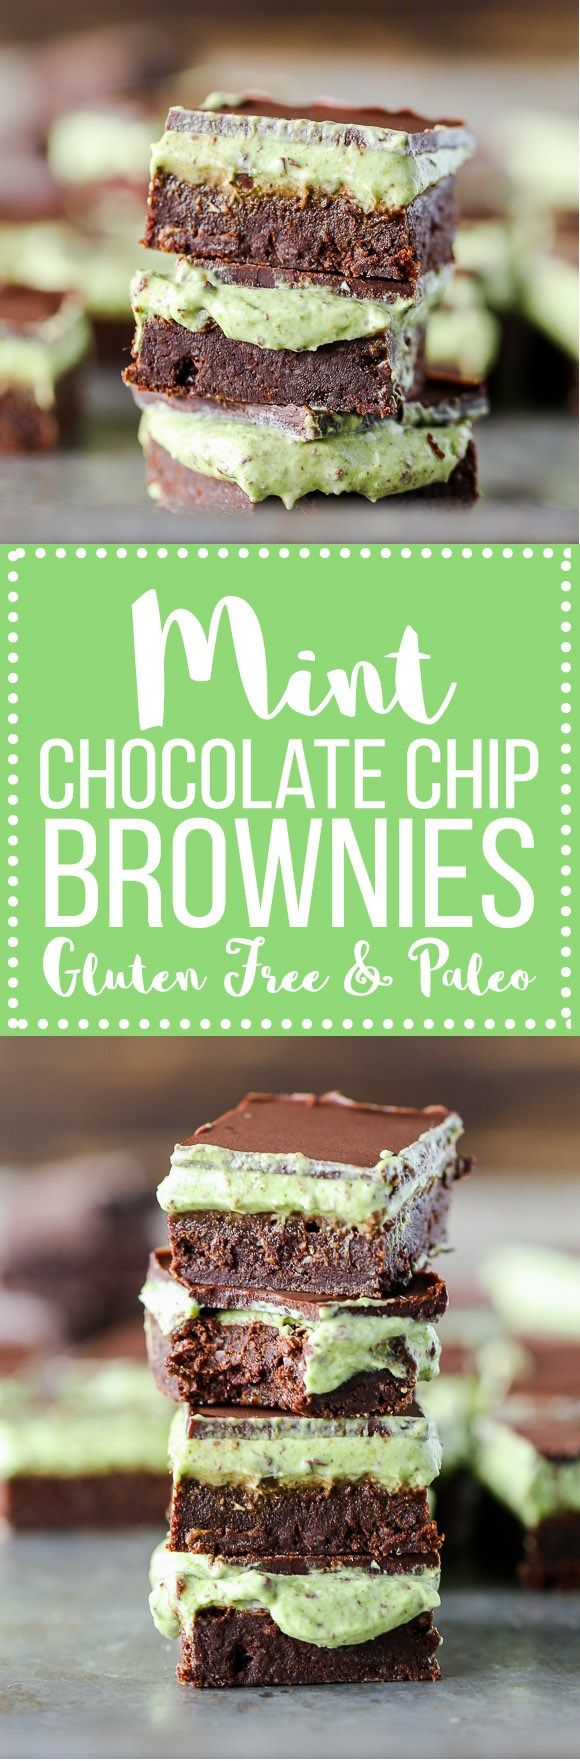 These Mint Chocolate Chip Brownies are ultra rich and fudgy with a mint chocolate chip topping! They are gluten-free, refined sugar-free + Paleo-friendly, and you'll never guess which healthy ingredient is in them!